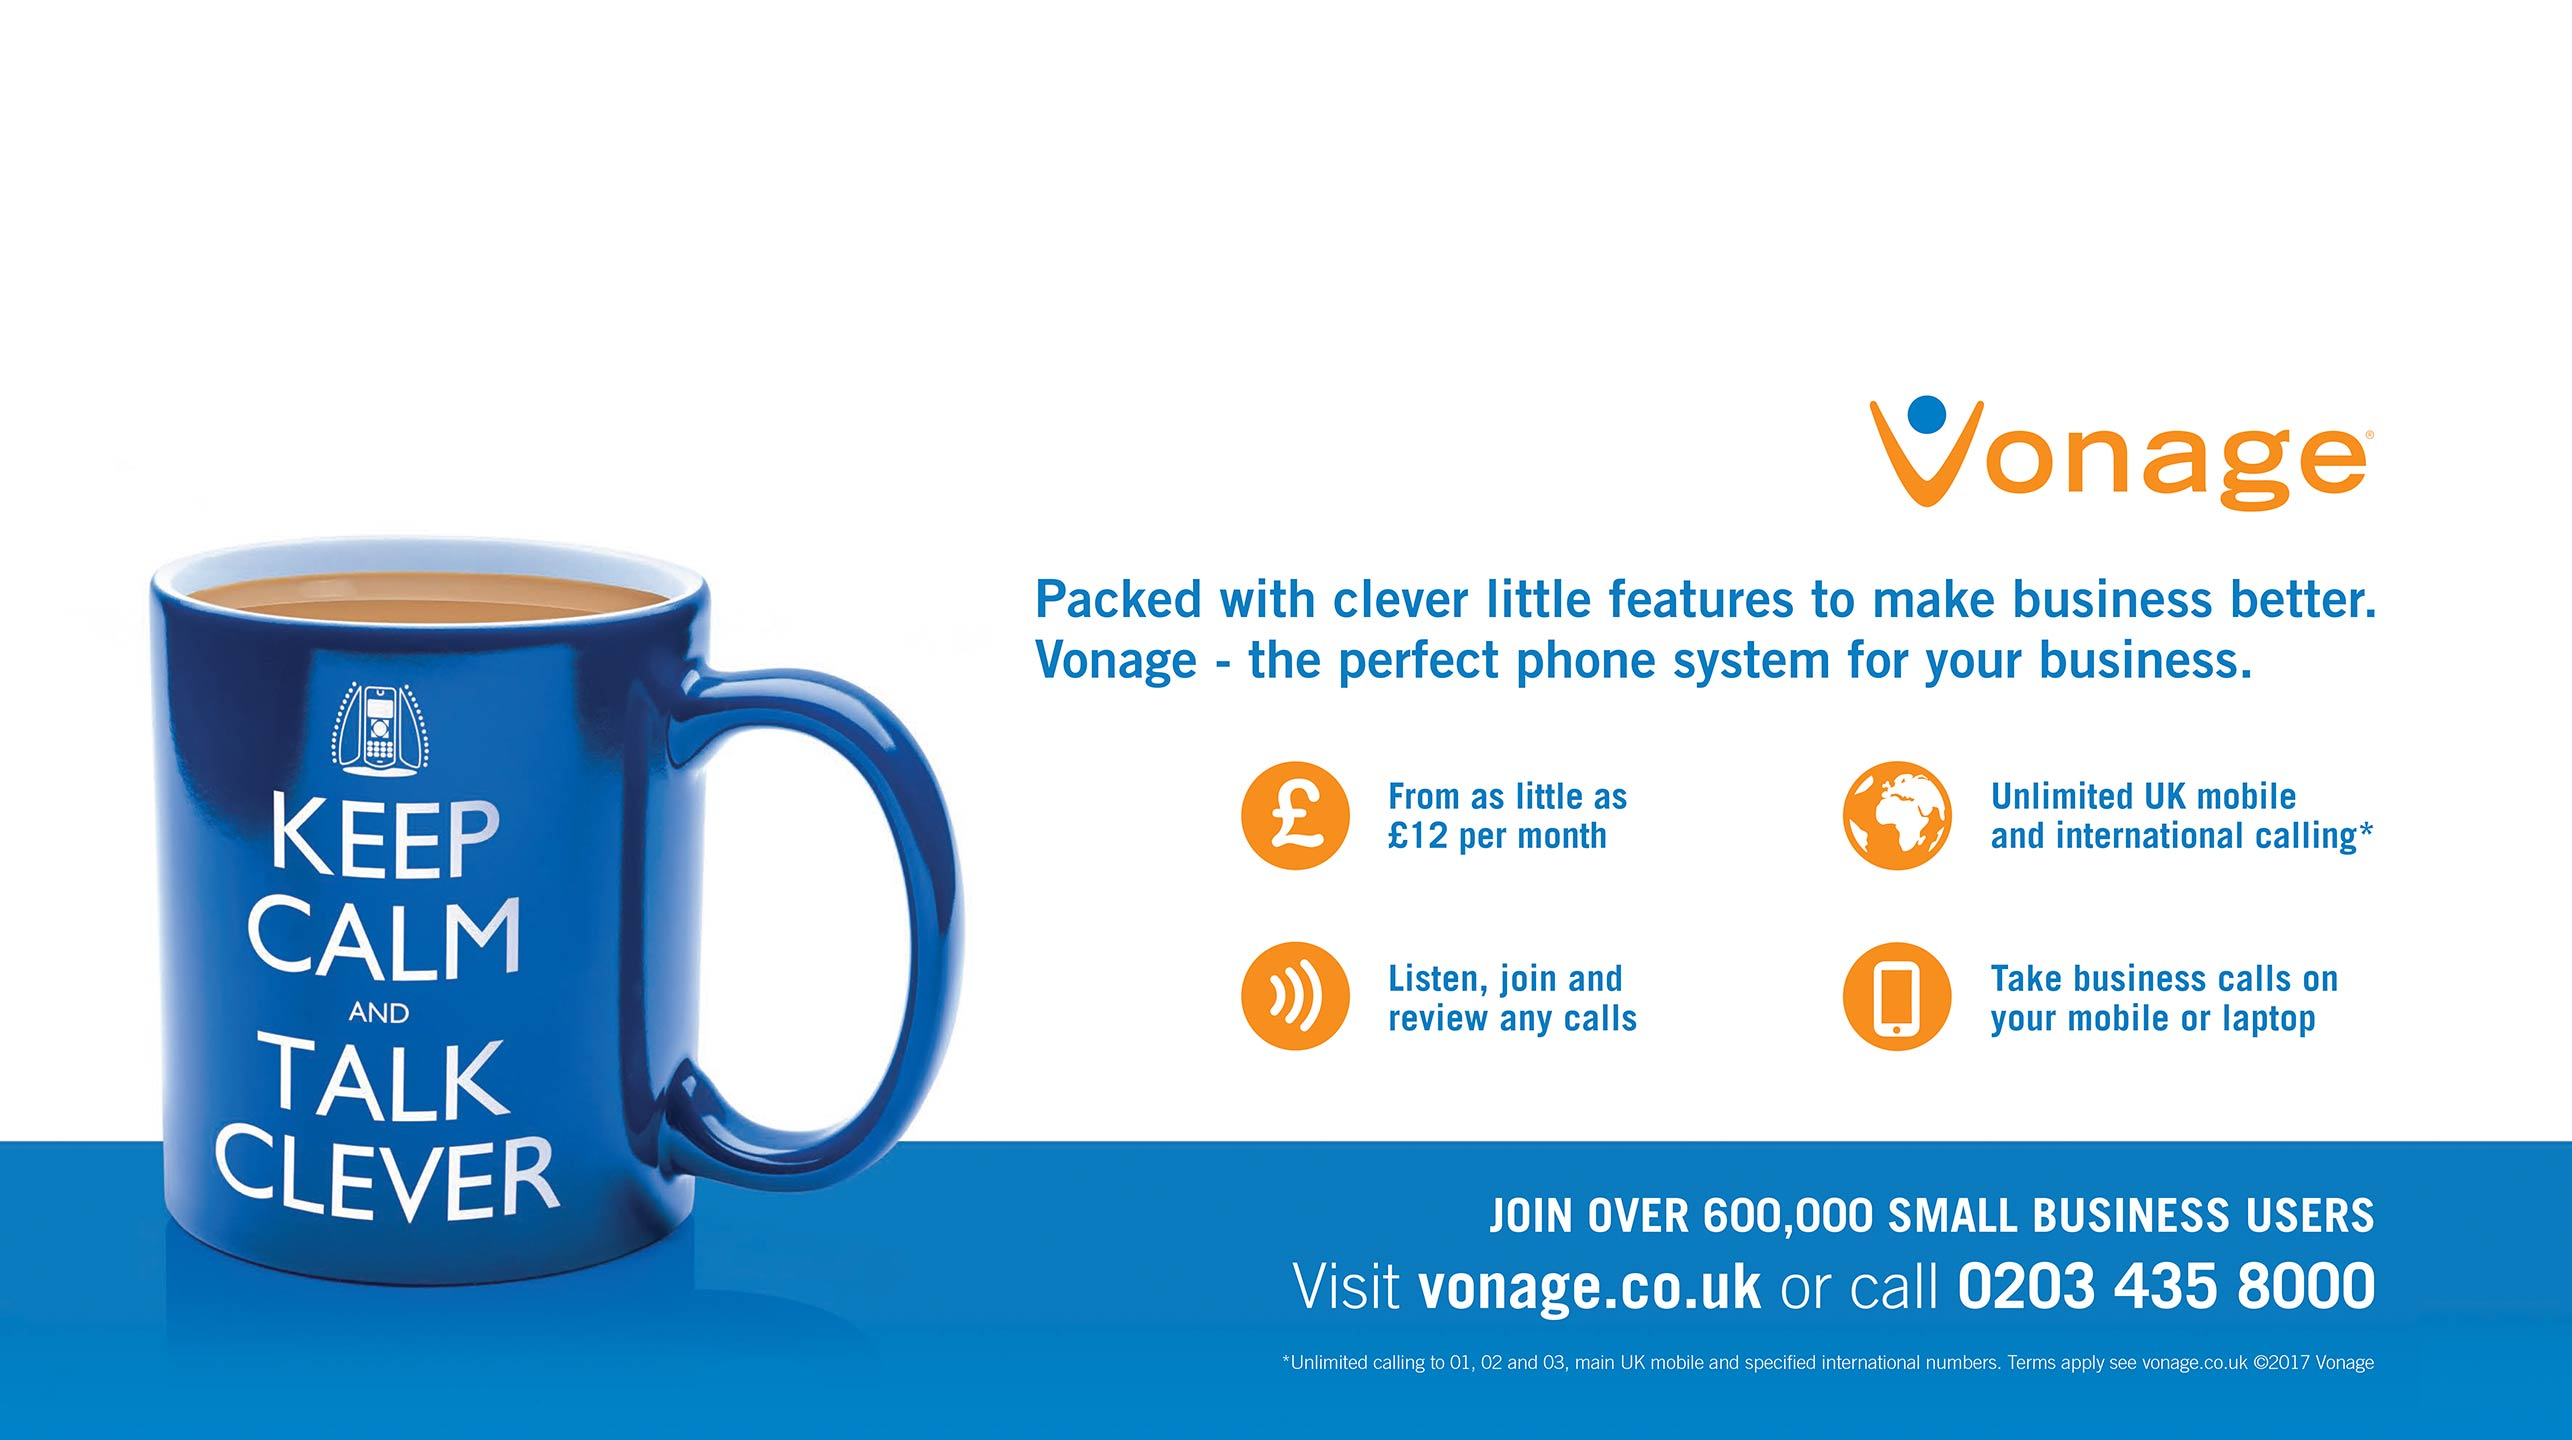 Vonage - Keep Calm